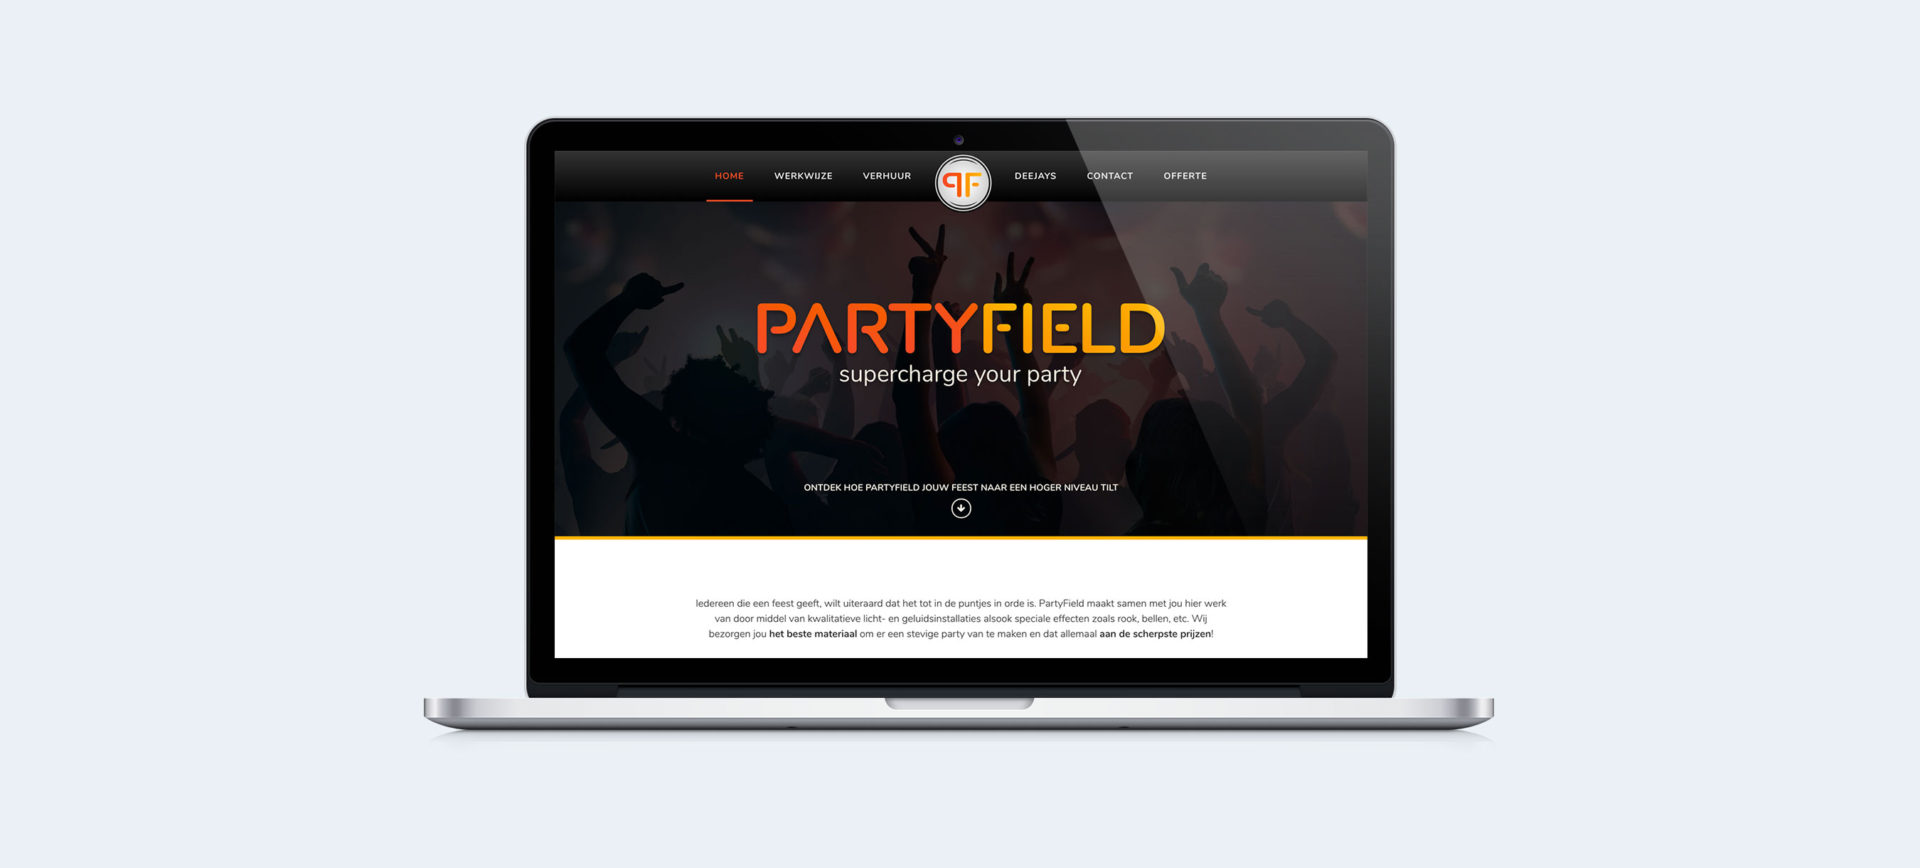 project-partyfield-image_4